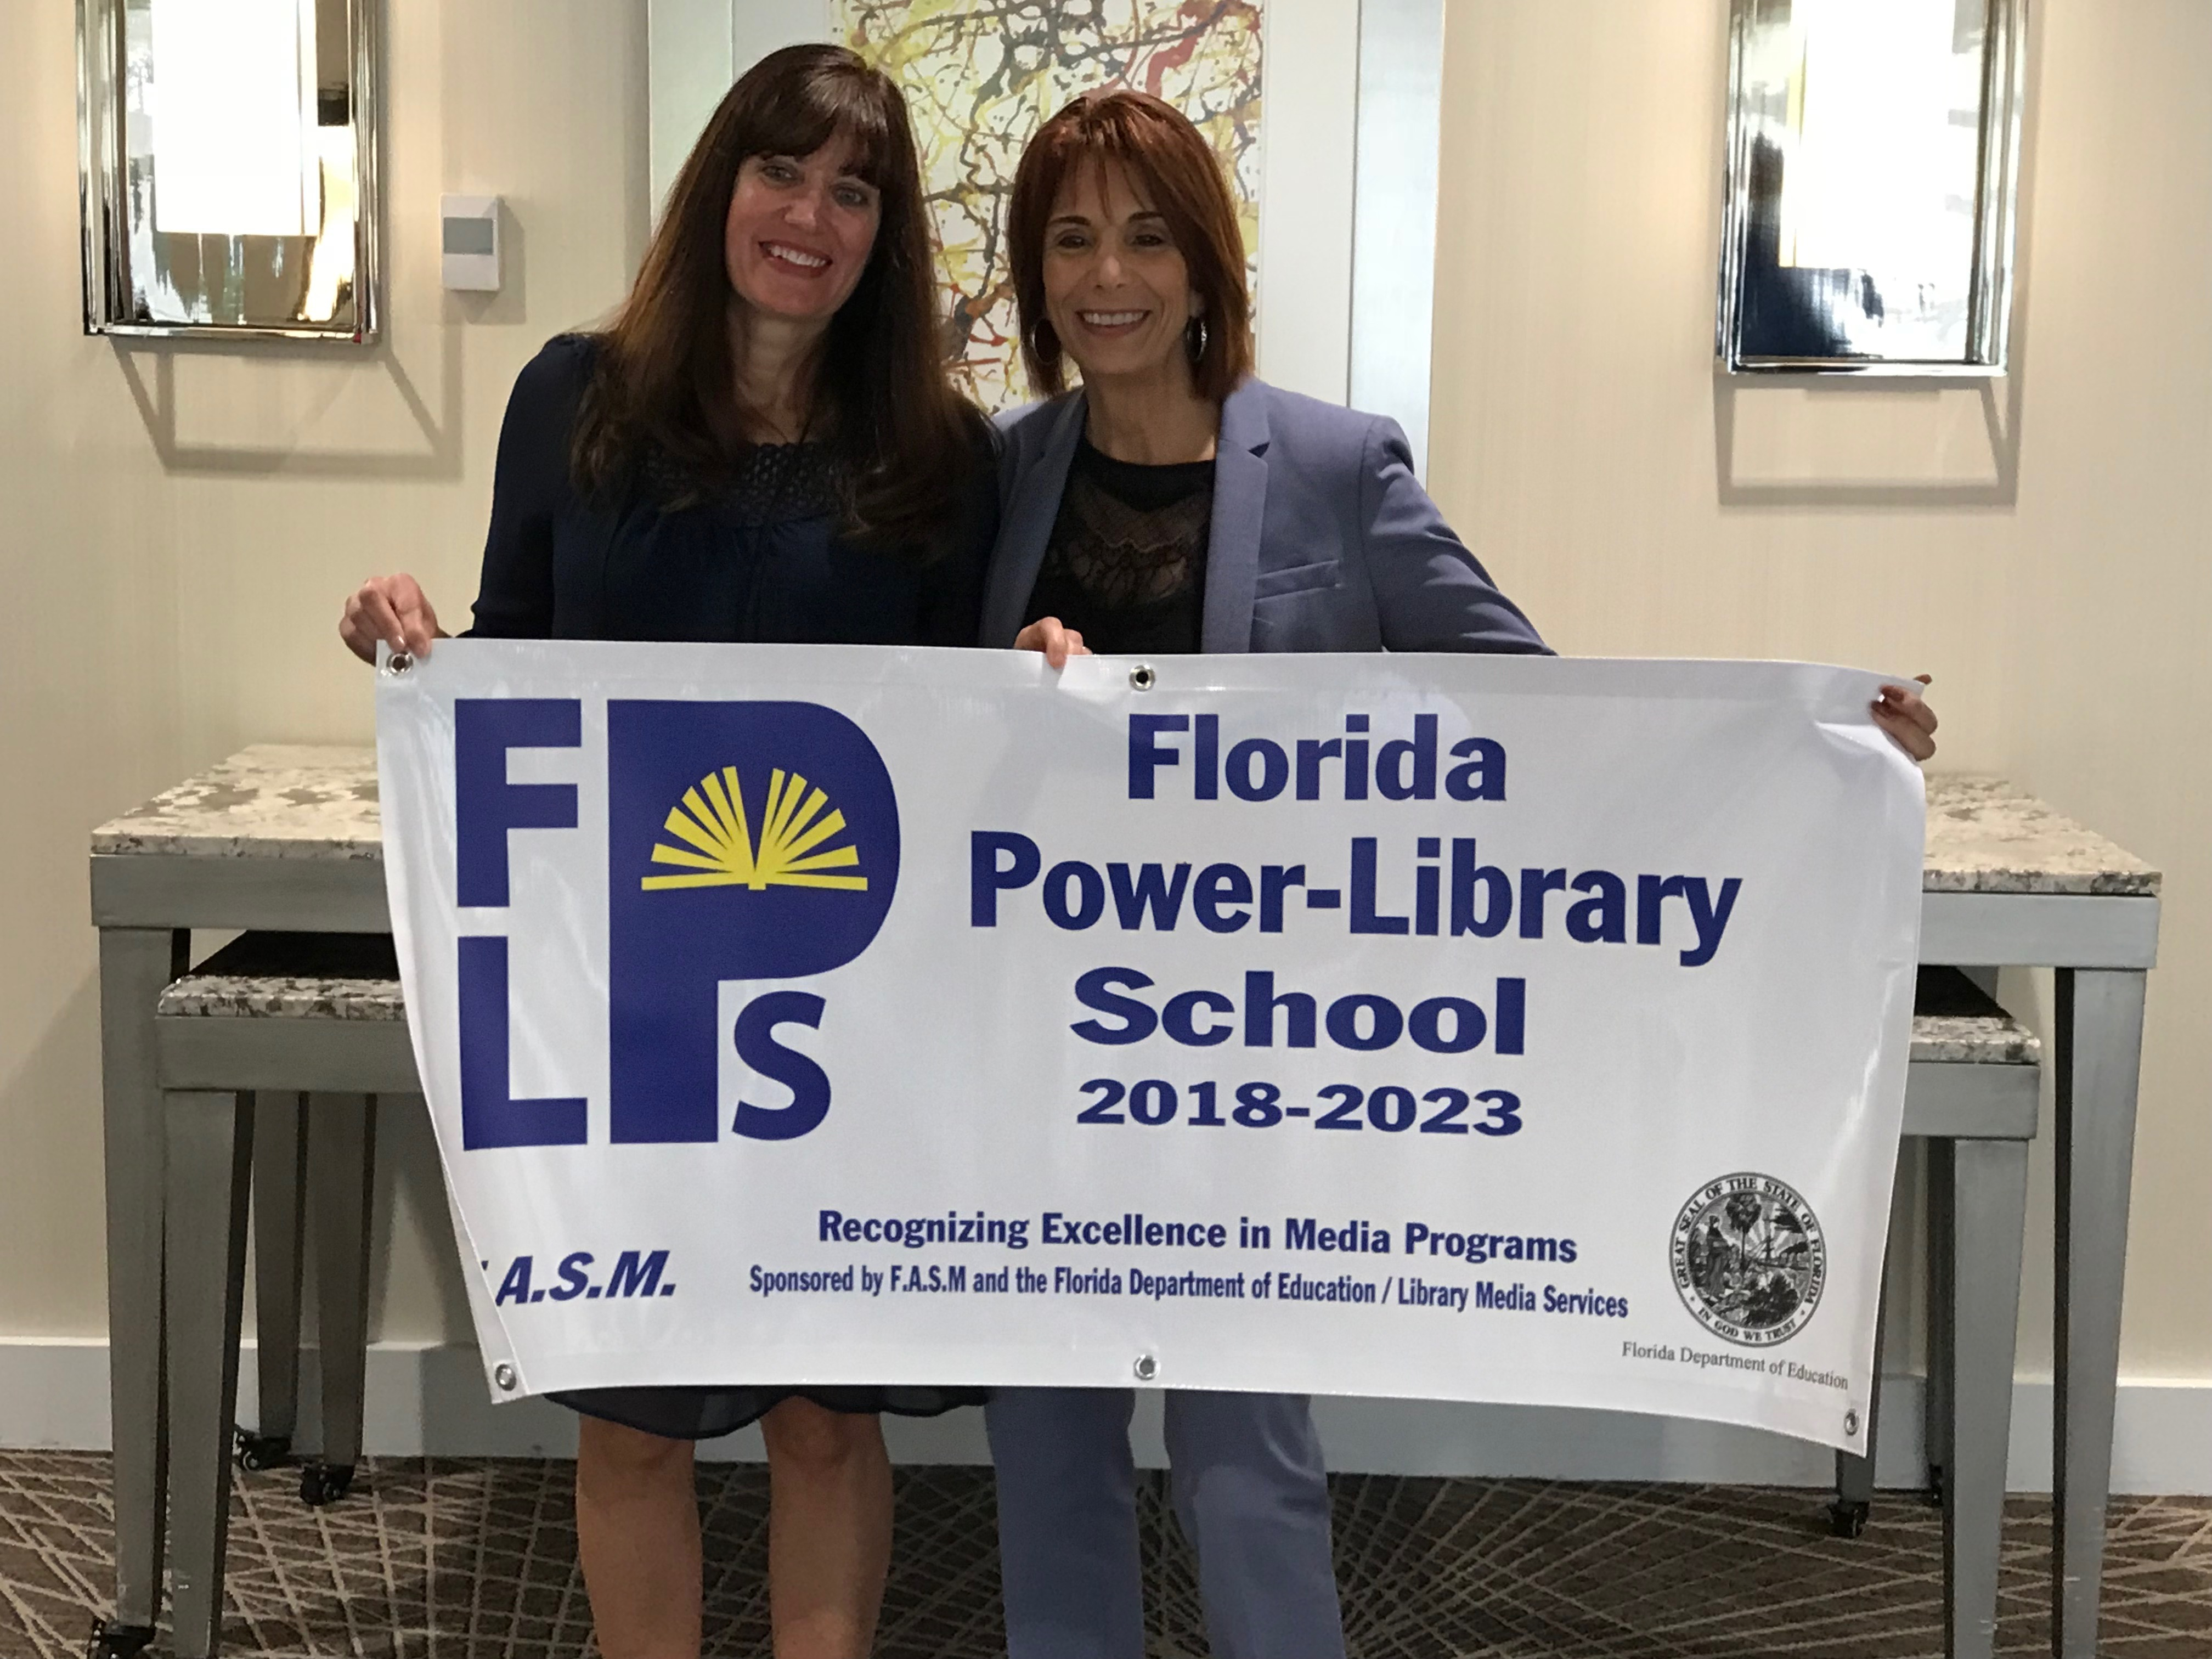 Principal, Cathy Corsaletti and Media Specialists, Tara Cain, with Florida Power-Library School banner